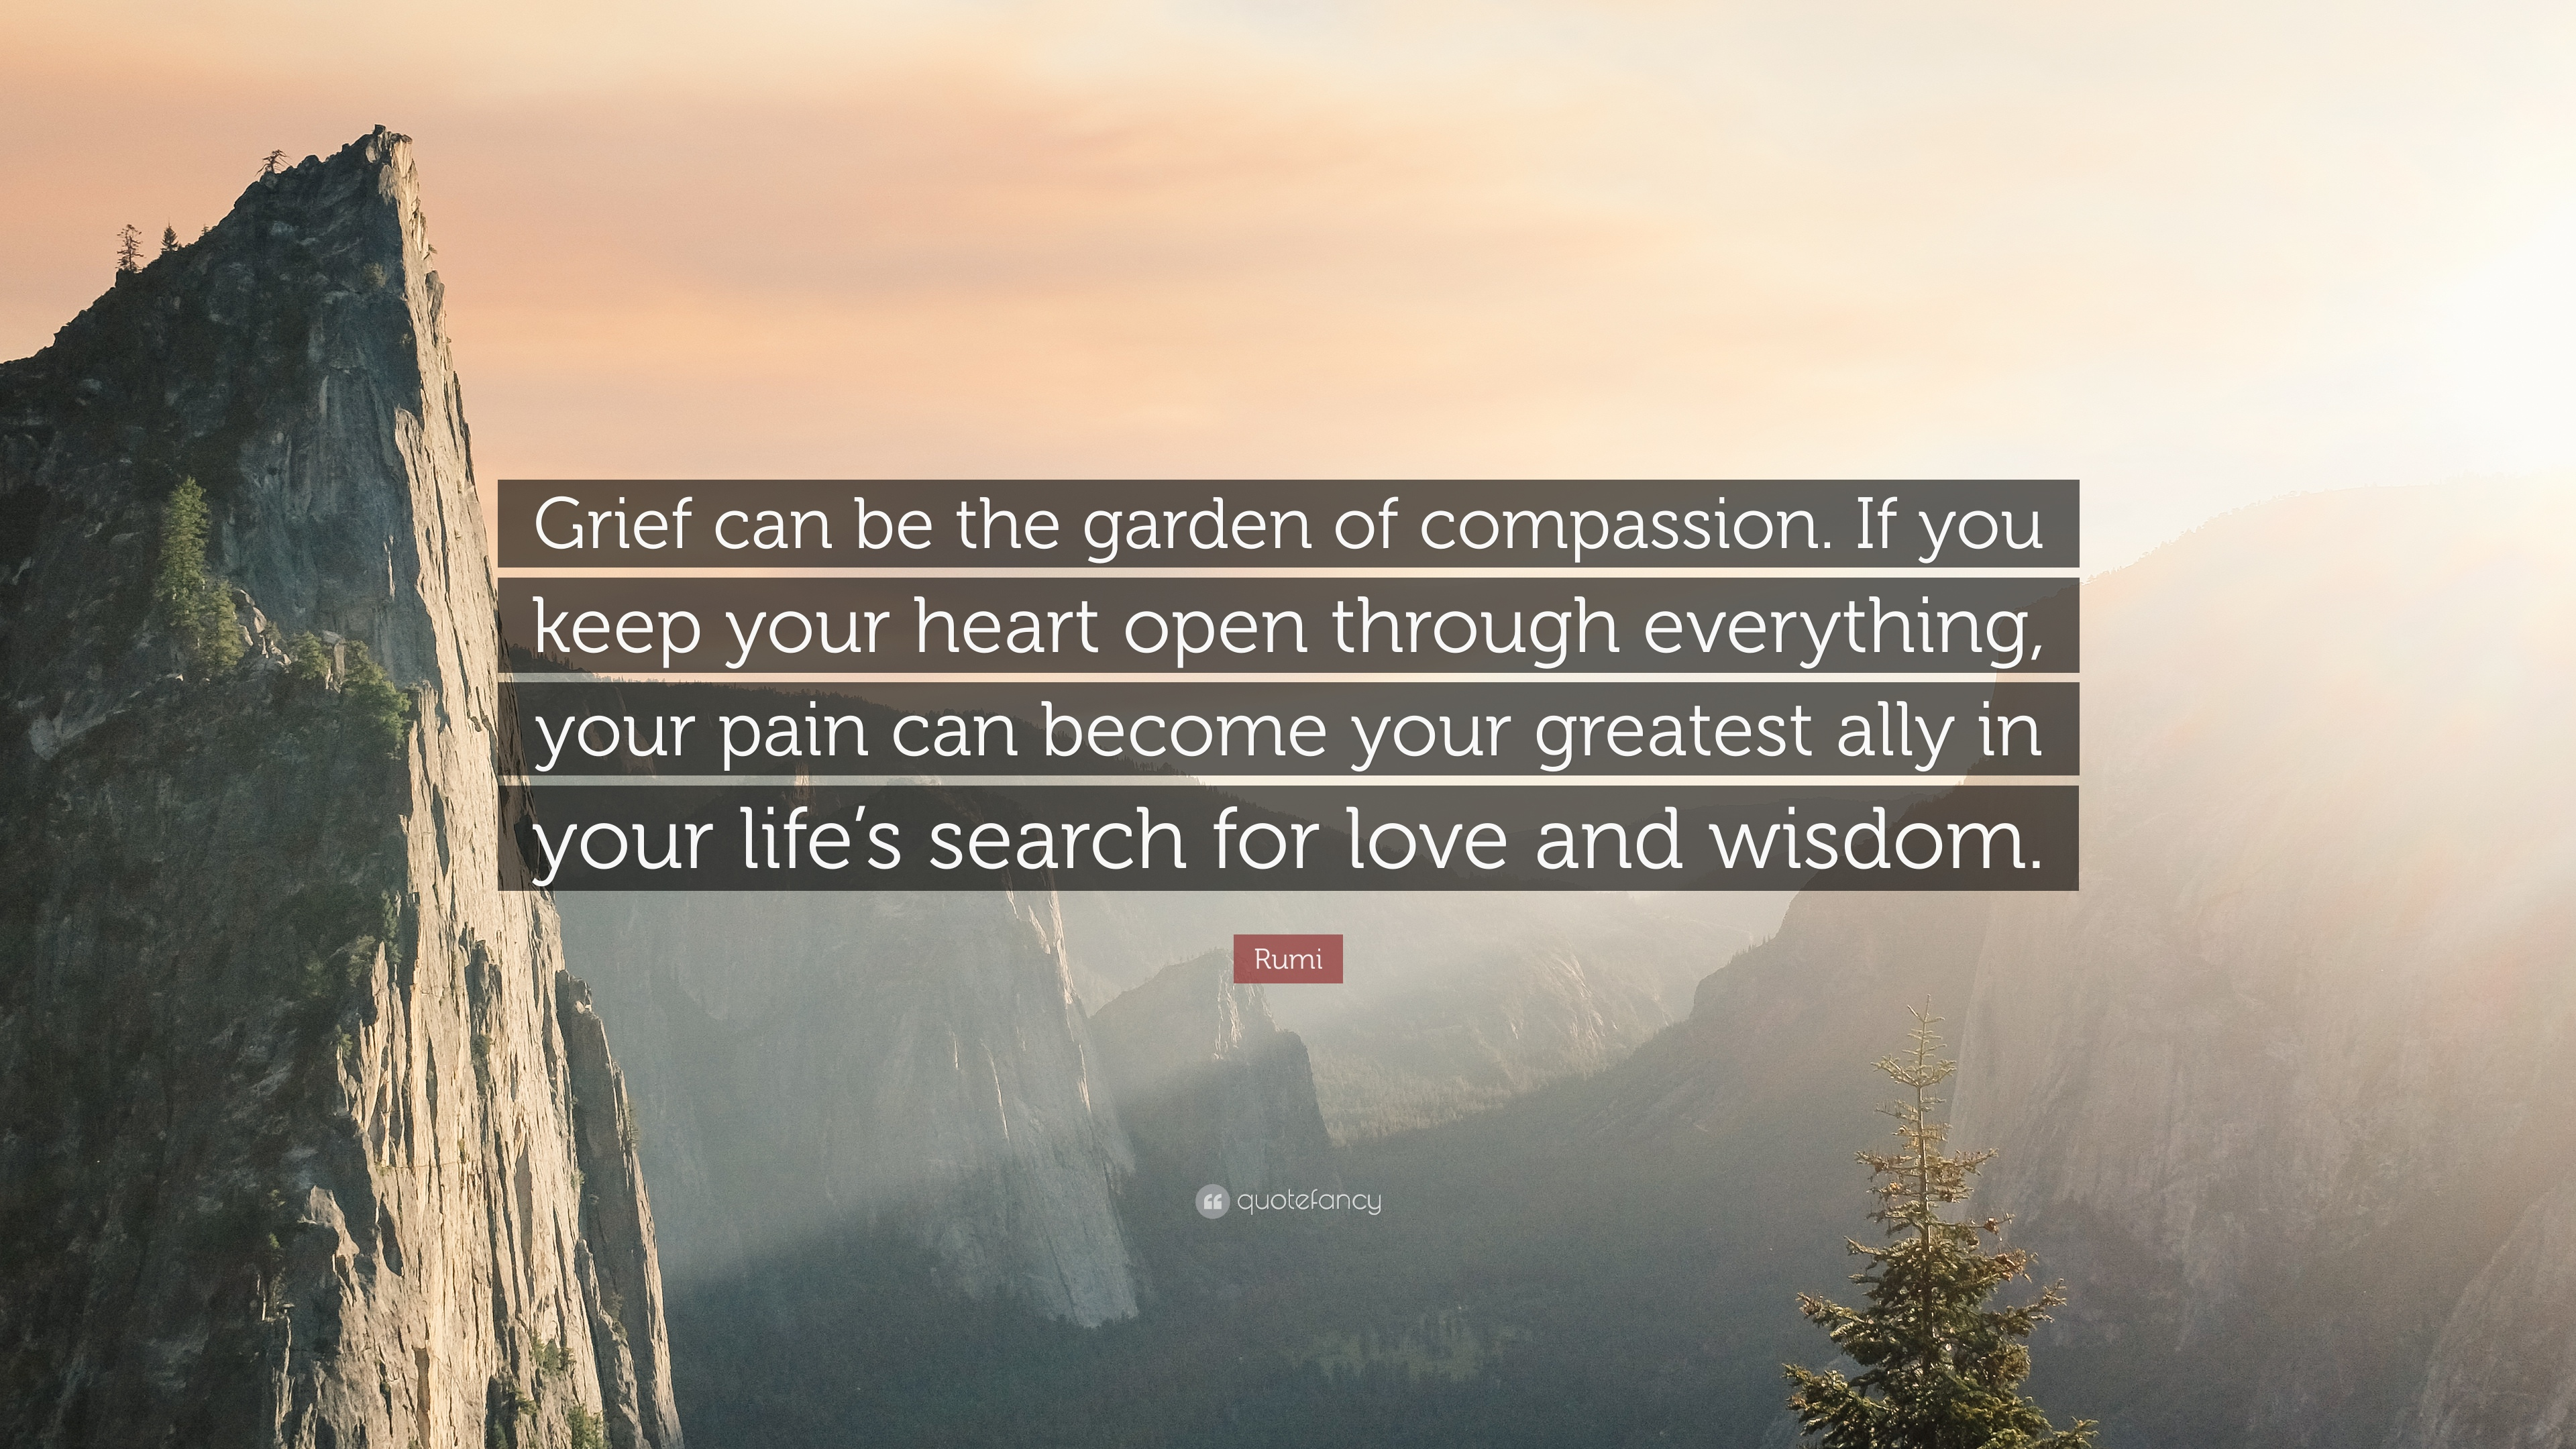 Rumi Quote Grief Can Be The Garden Of Compassion If You Keep Your